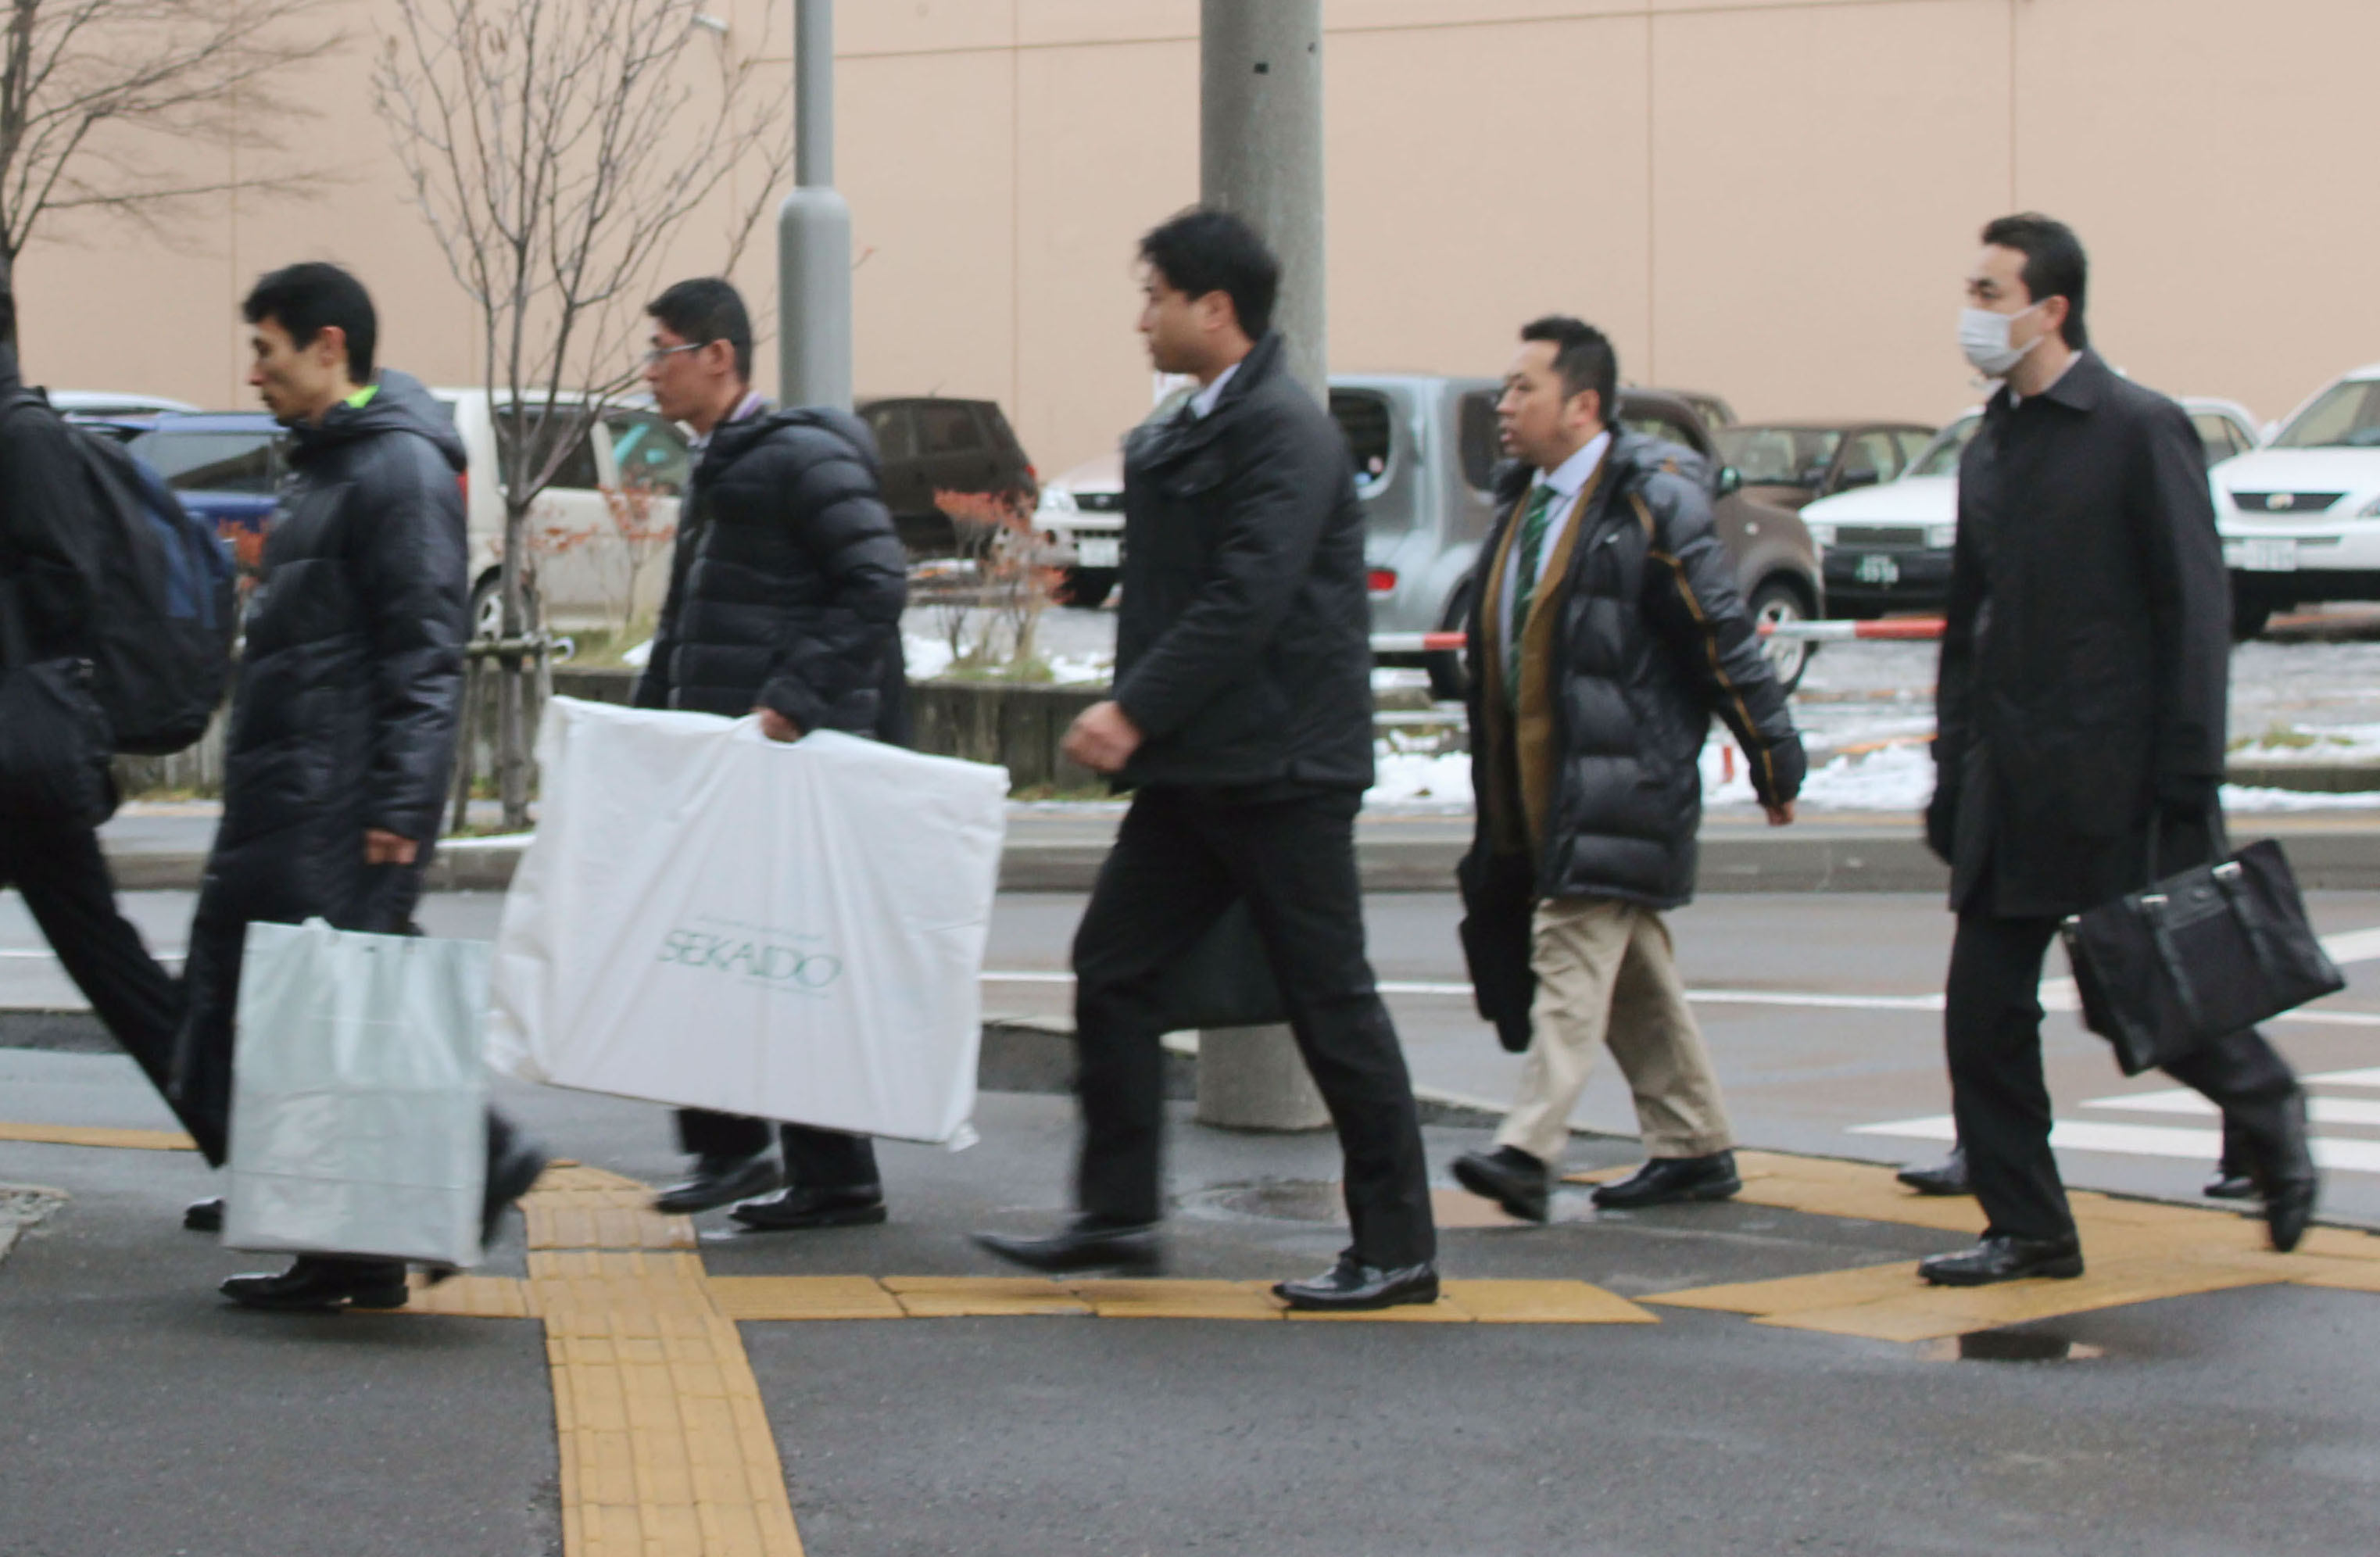 Sending a message: Police enter a company that manages 2channel's servers in Sapporo on Nov. 26. | KYODO